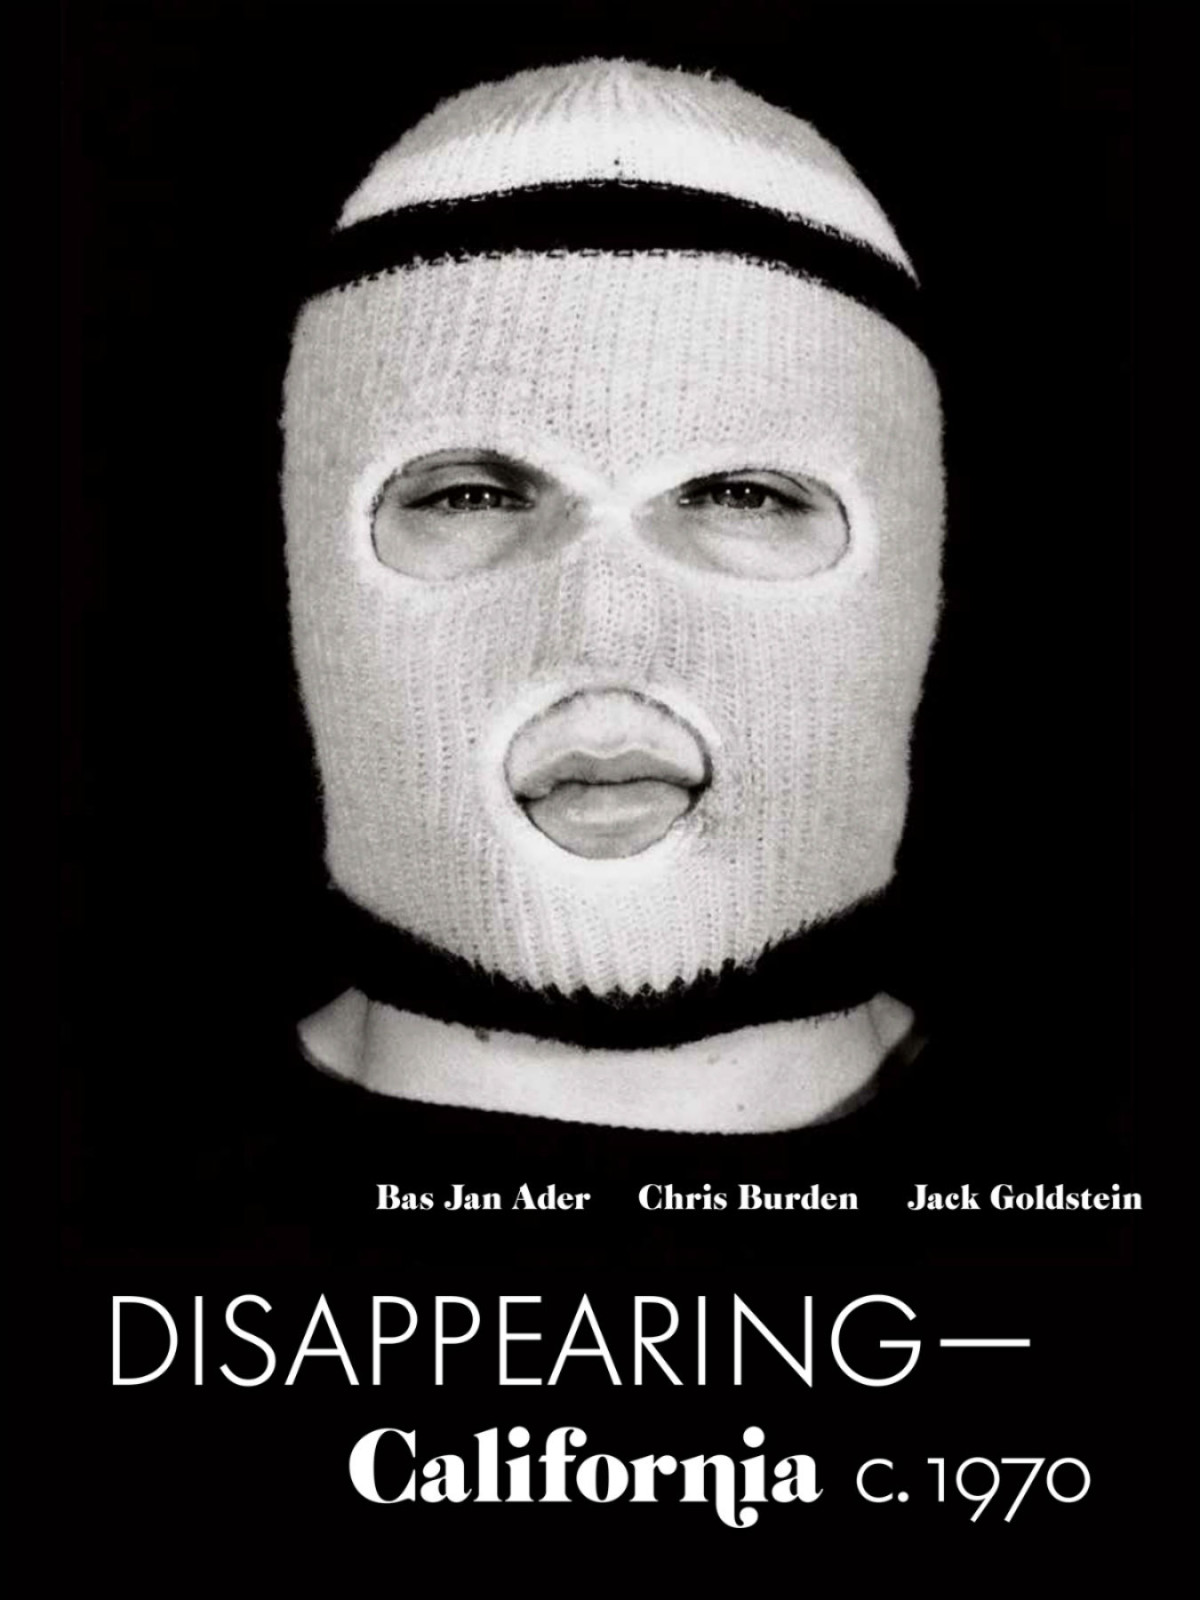 Disappearing-California, c. 1970: Bas Jan Ader, Chris Burden, Jack Goldstein